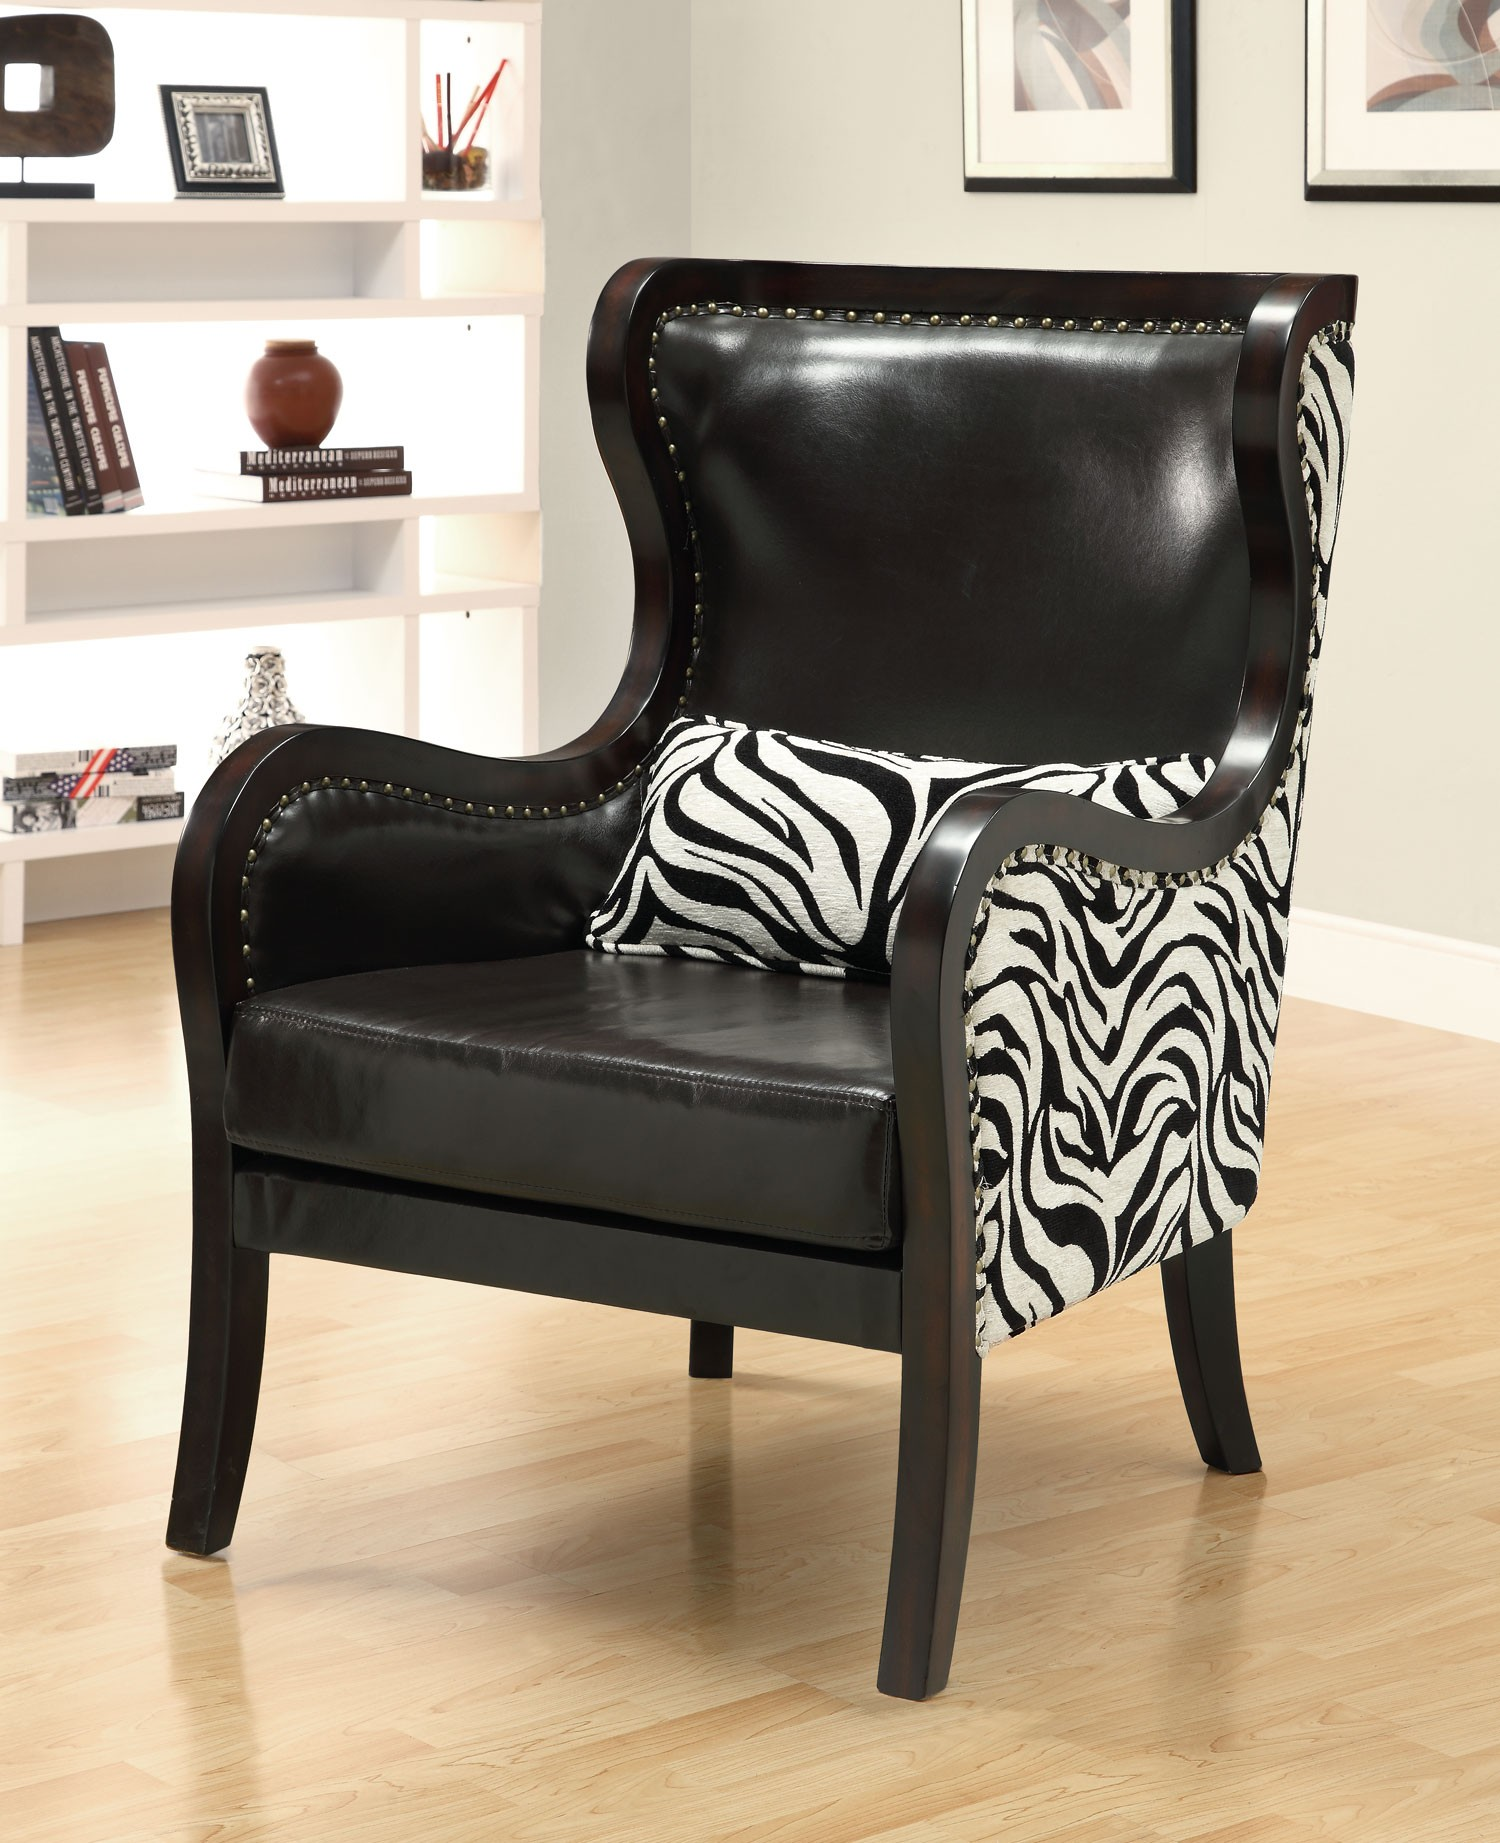 Zebra Accent Chair 902069 Black Zebra Pattern Accent Chair From Coaster